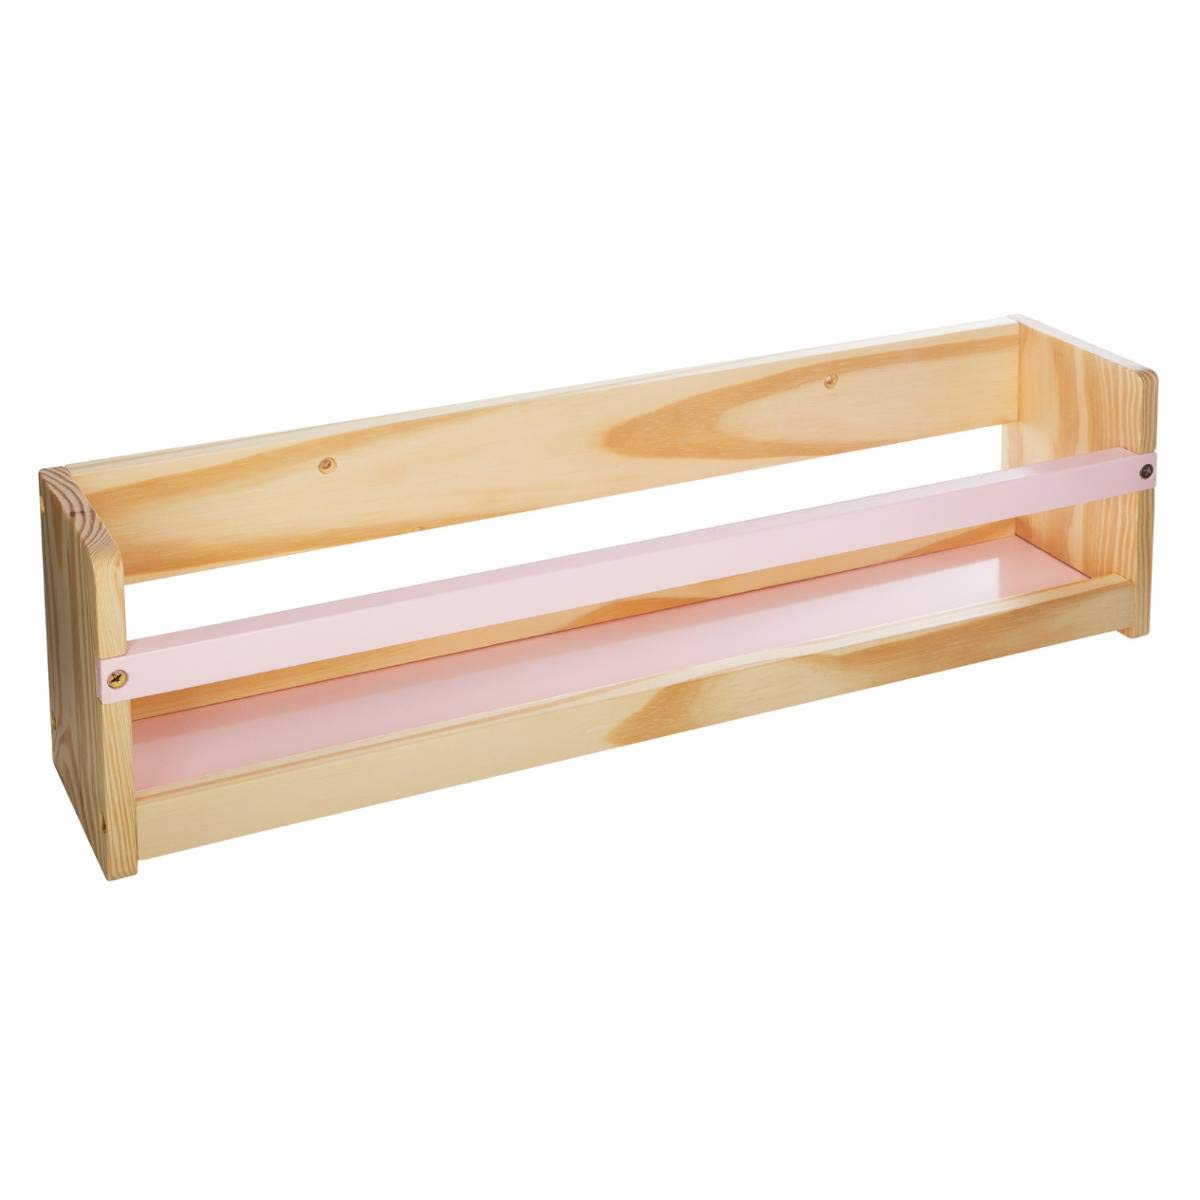 Atmosphera- Bookshelf or a child's bedroom (Pink)